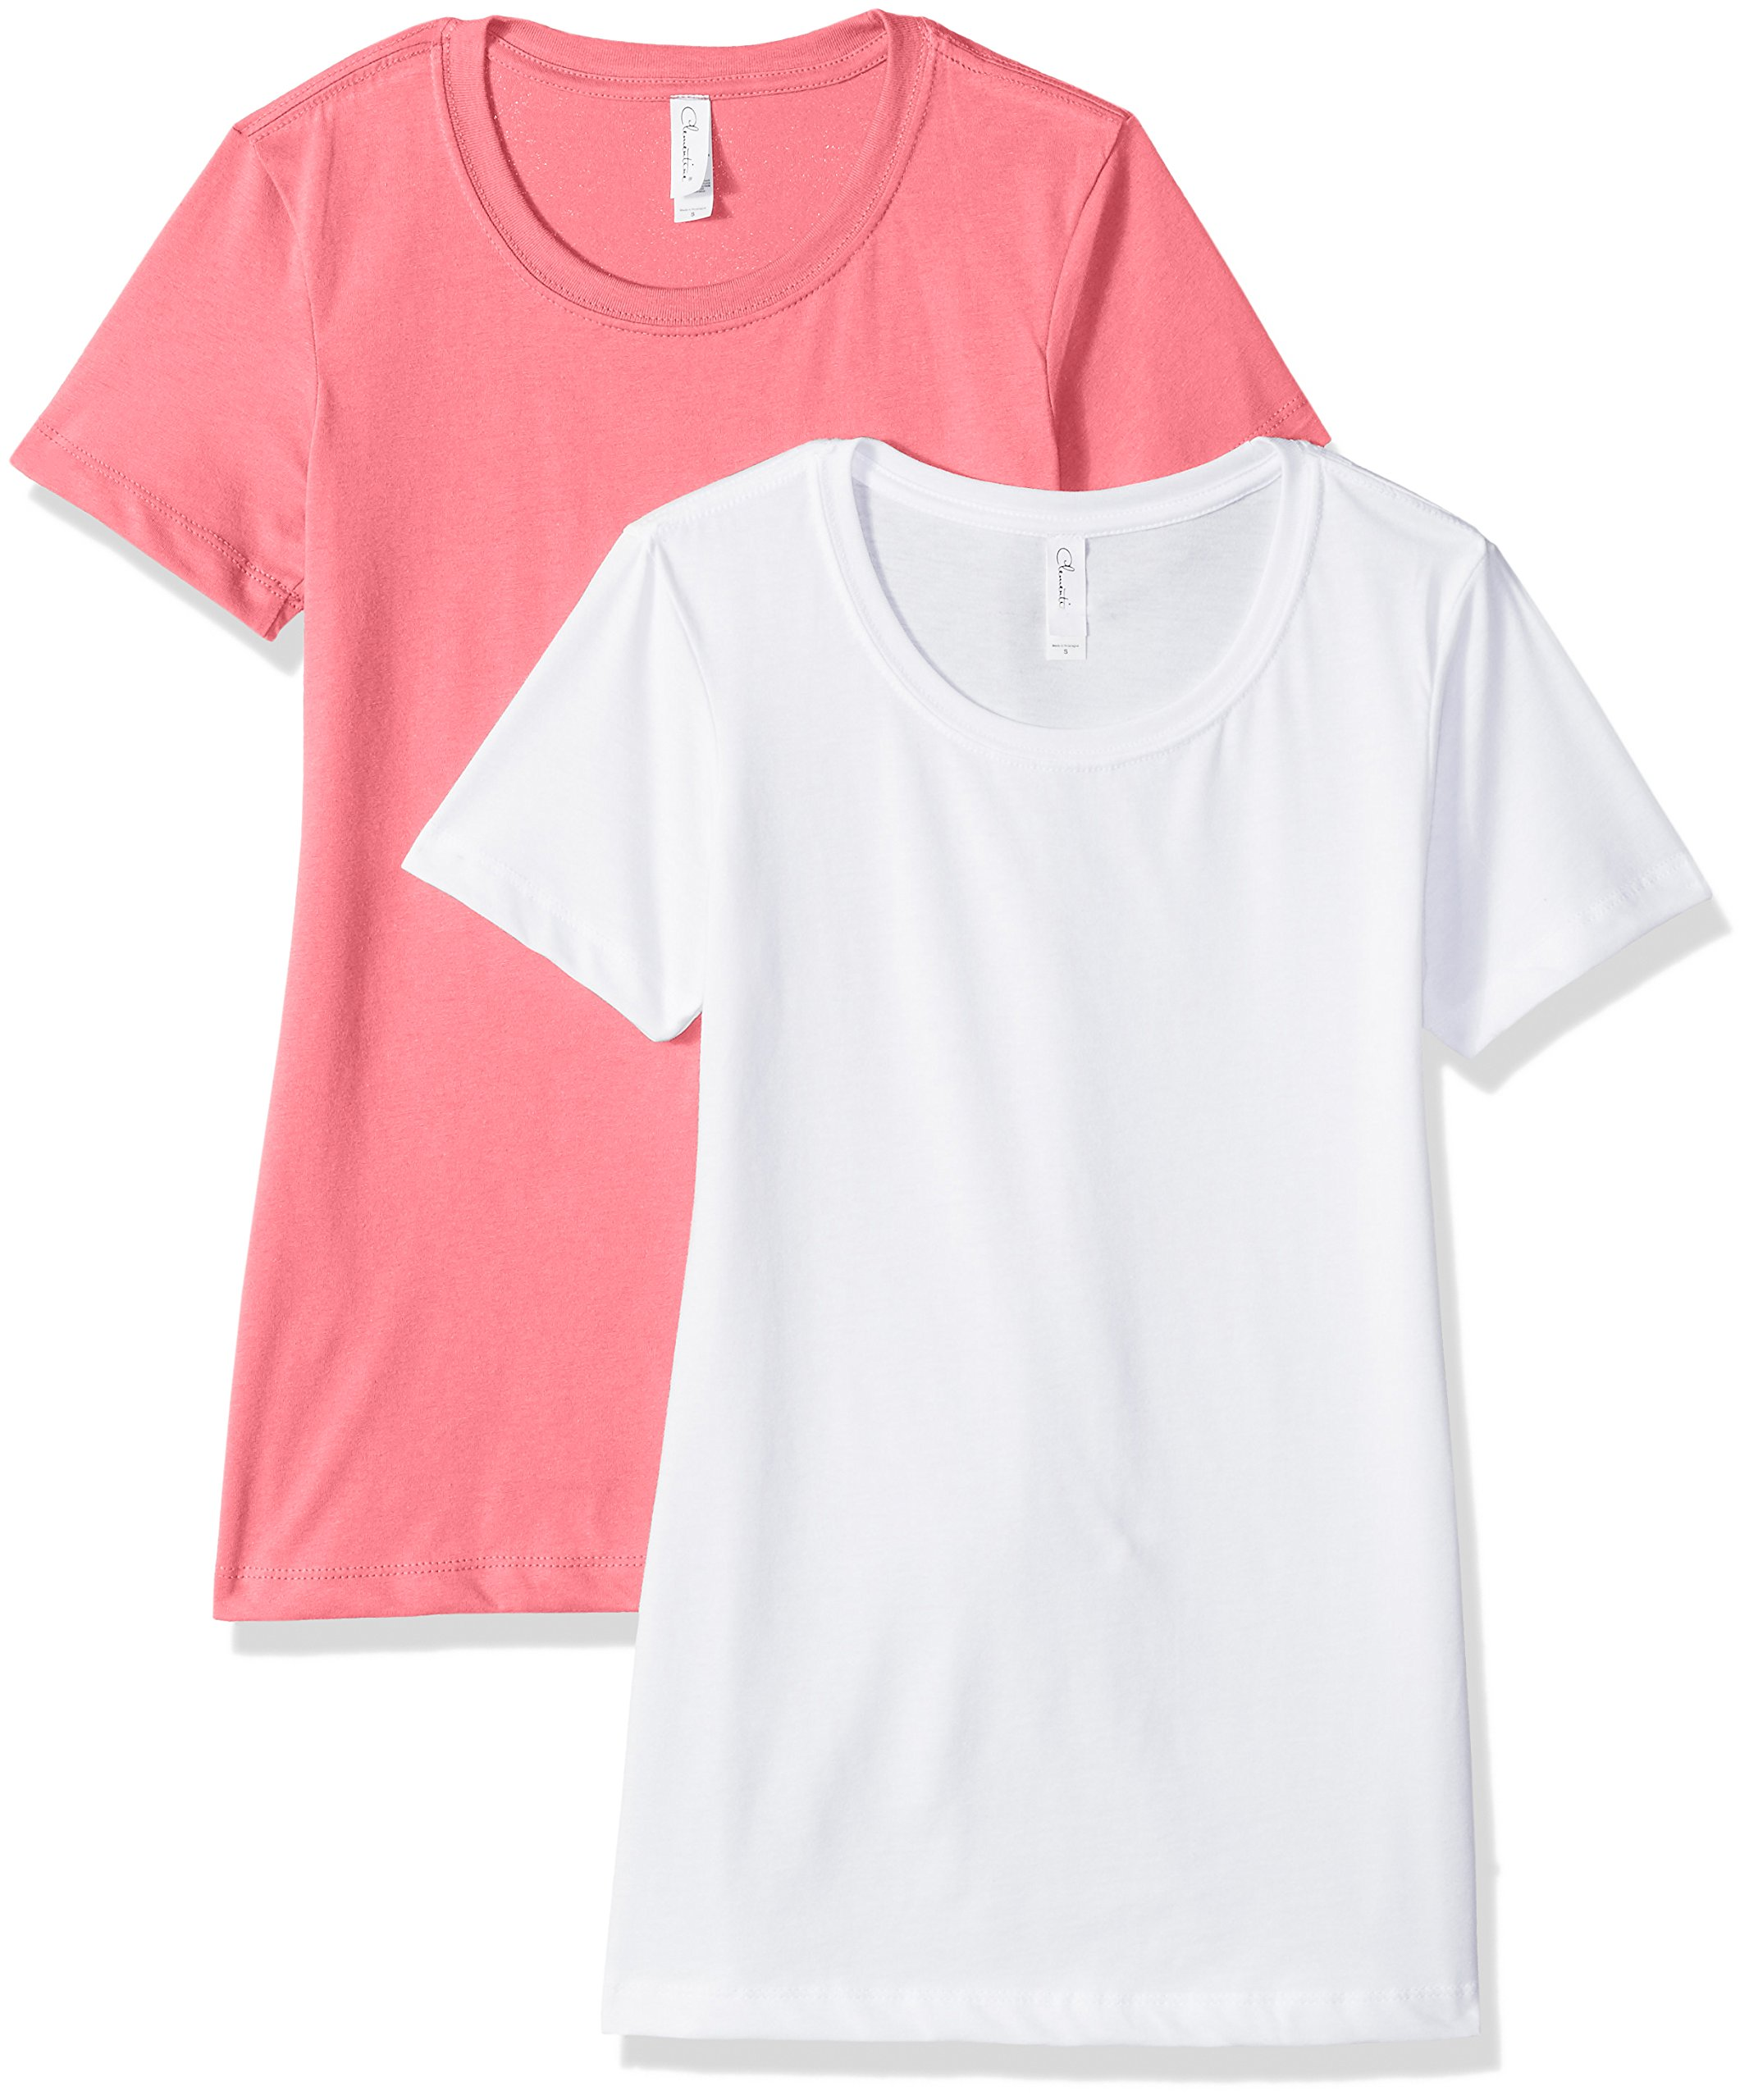 Clementine Apparel Women's Petite Plus Ideal Soft and Trendy Crew Neck Tee (Pack of 2), WhiteHot Pink, XXL